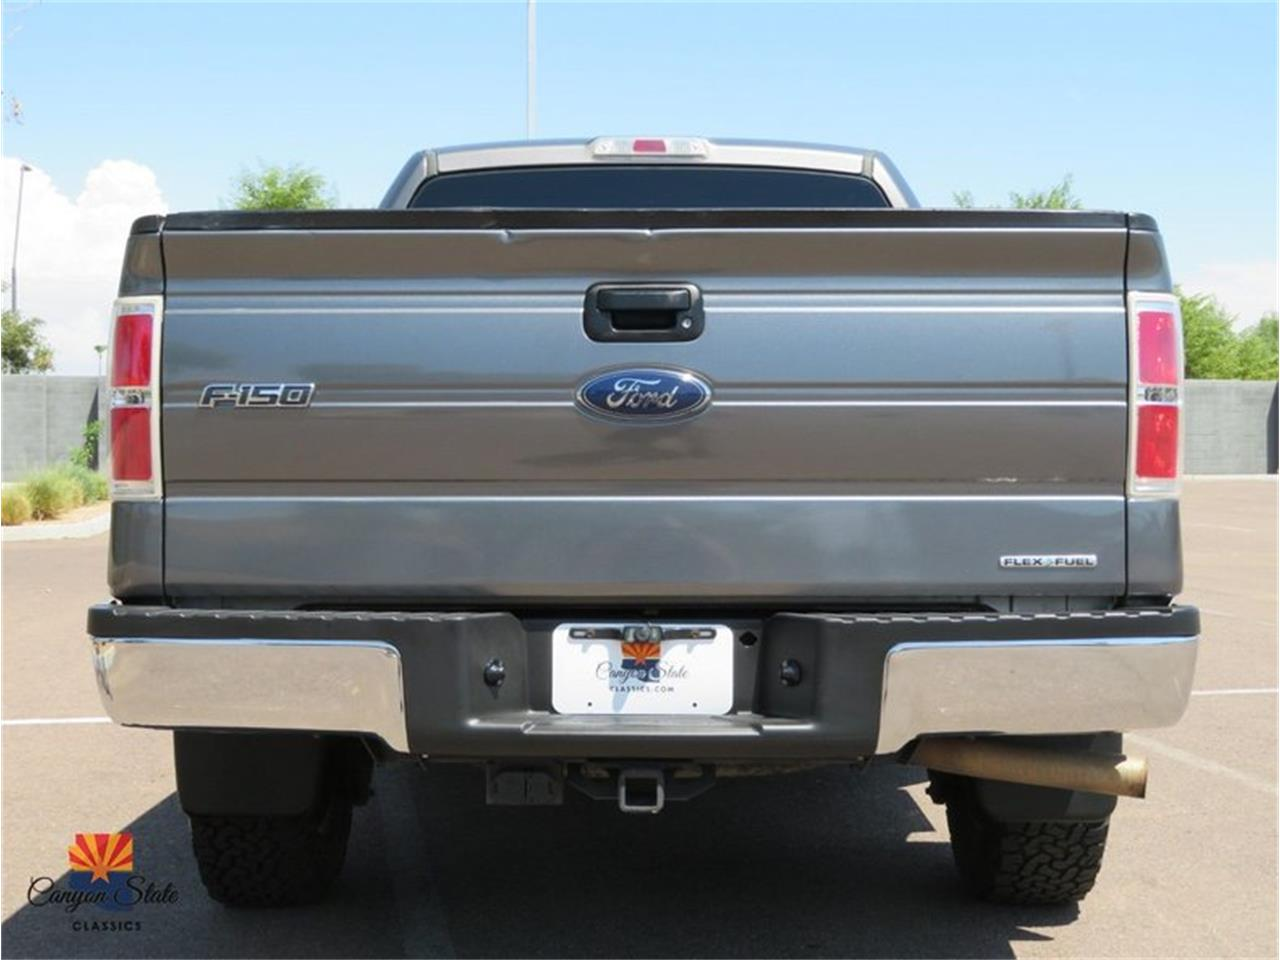 2014 Ford F150 for sale in Tempe, AZ – photo 51